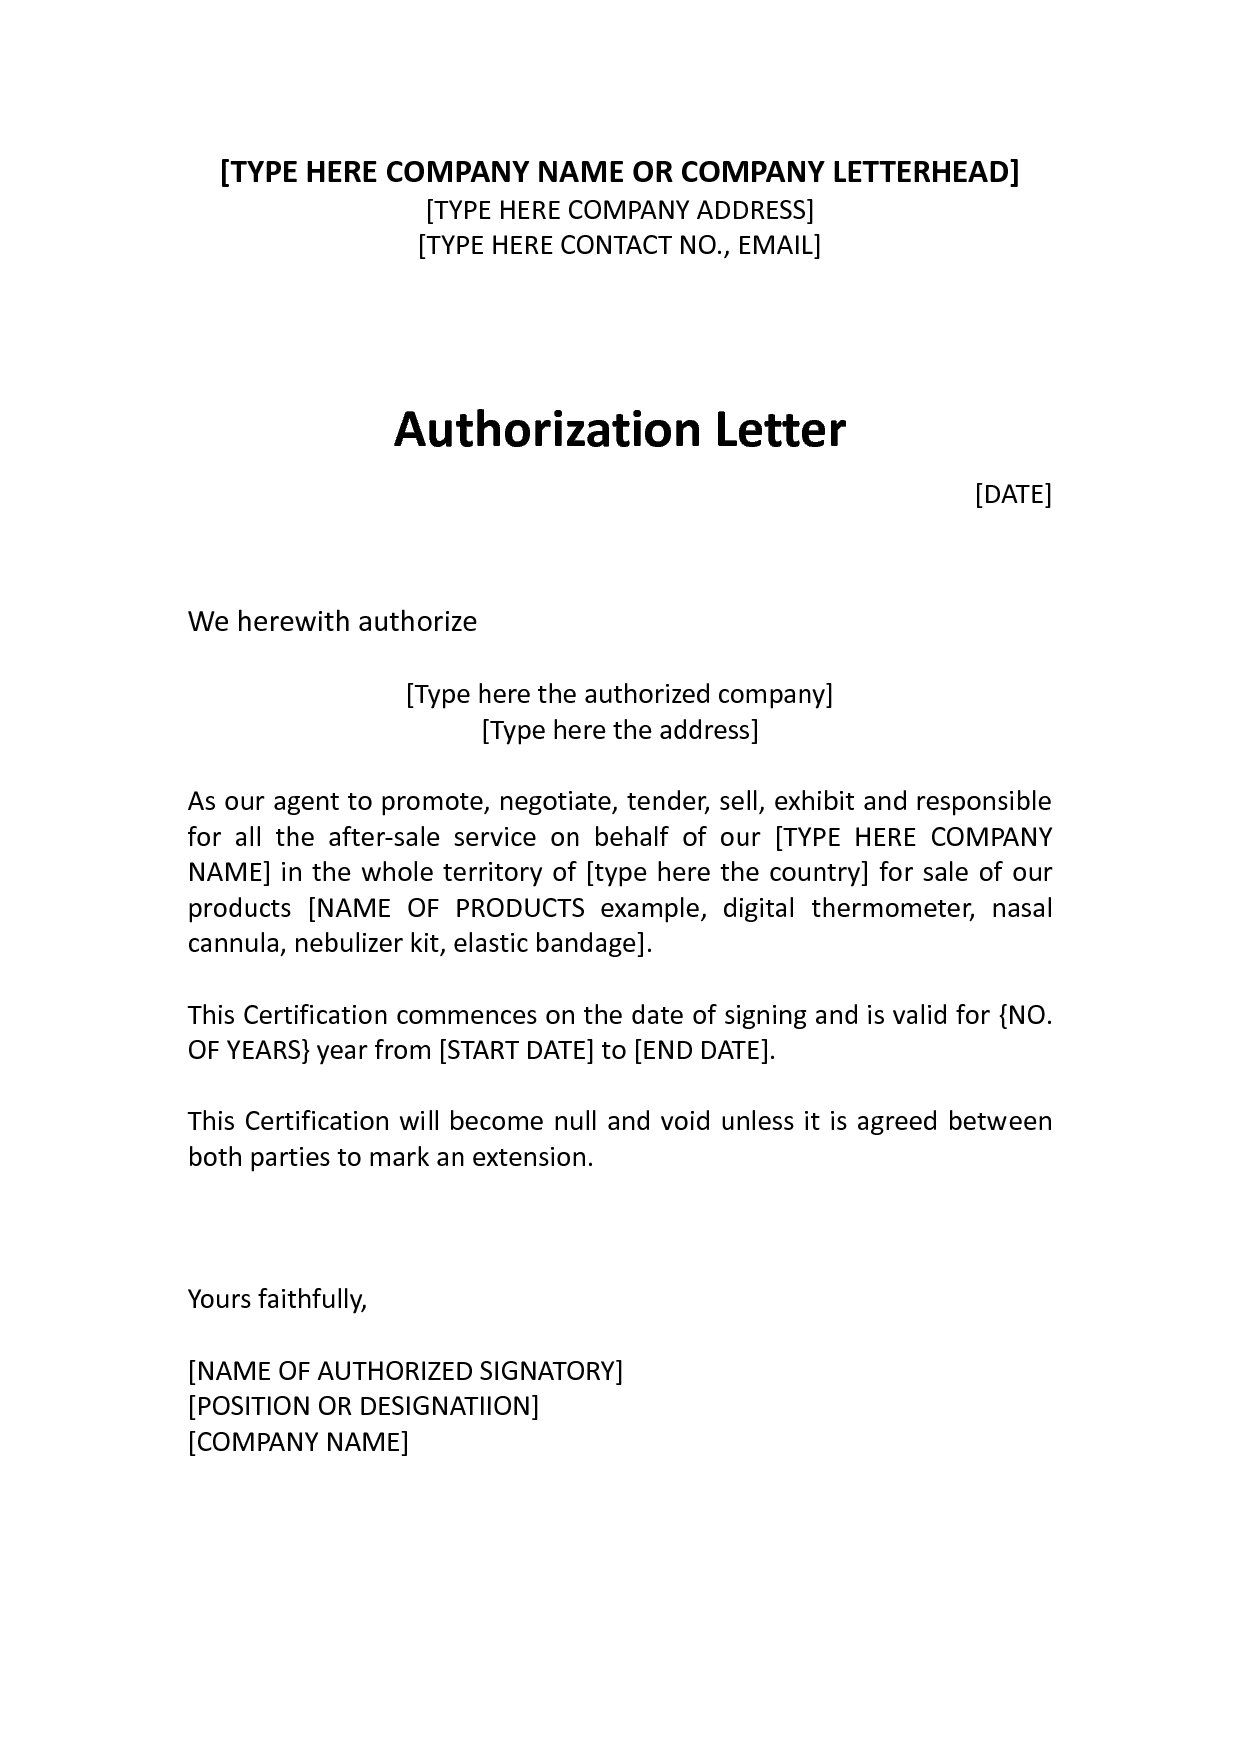 authorize letter sample